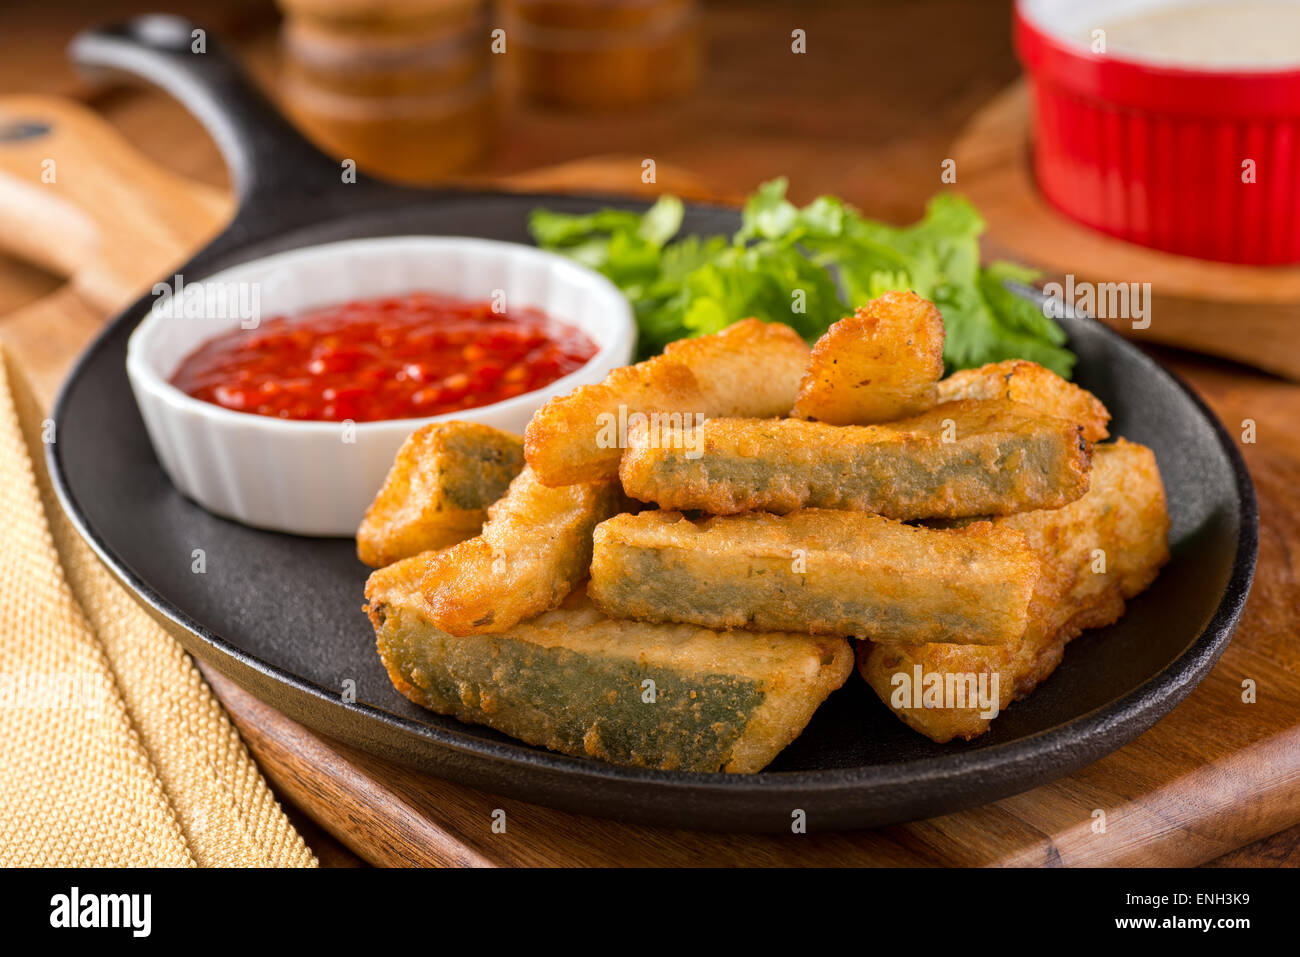 Delicious deep fried zucchini sticks with marinara dipping sauce. Stock Photo